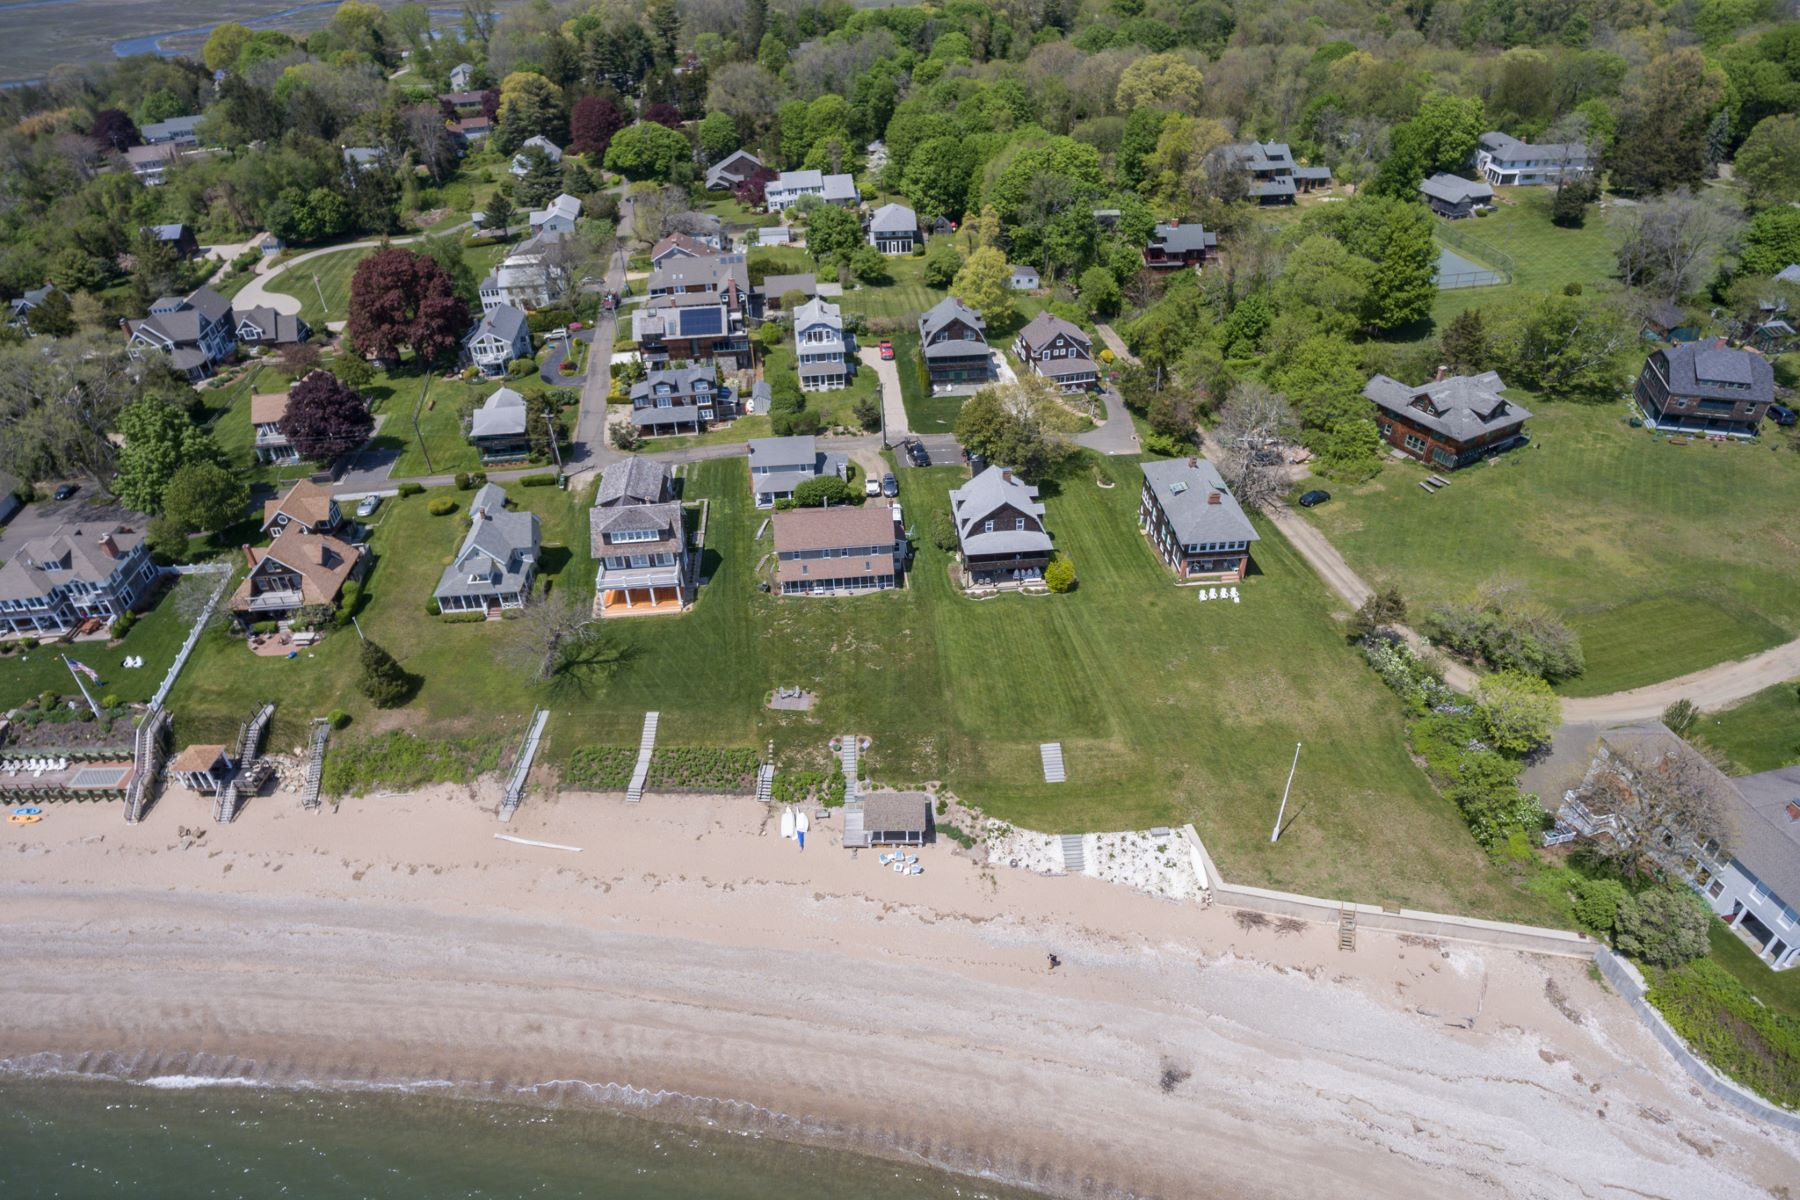 Single Family Home for Sale at Spectacular Hartford Ave Waterfront Setting- No flood ins. required 82 Hartford Avenue, Madison, Connecticut, 06443 United States